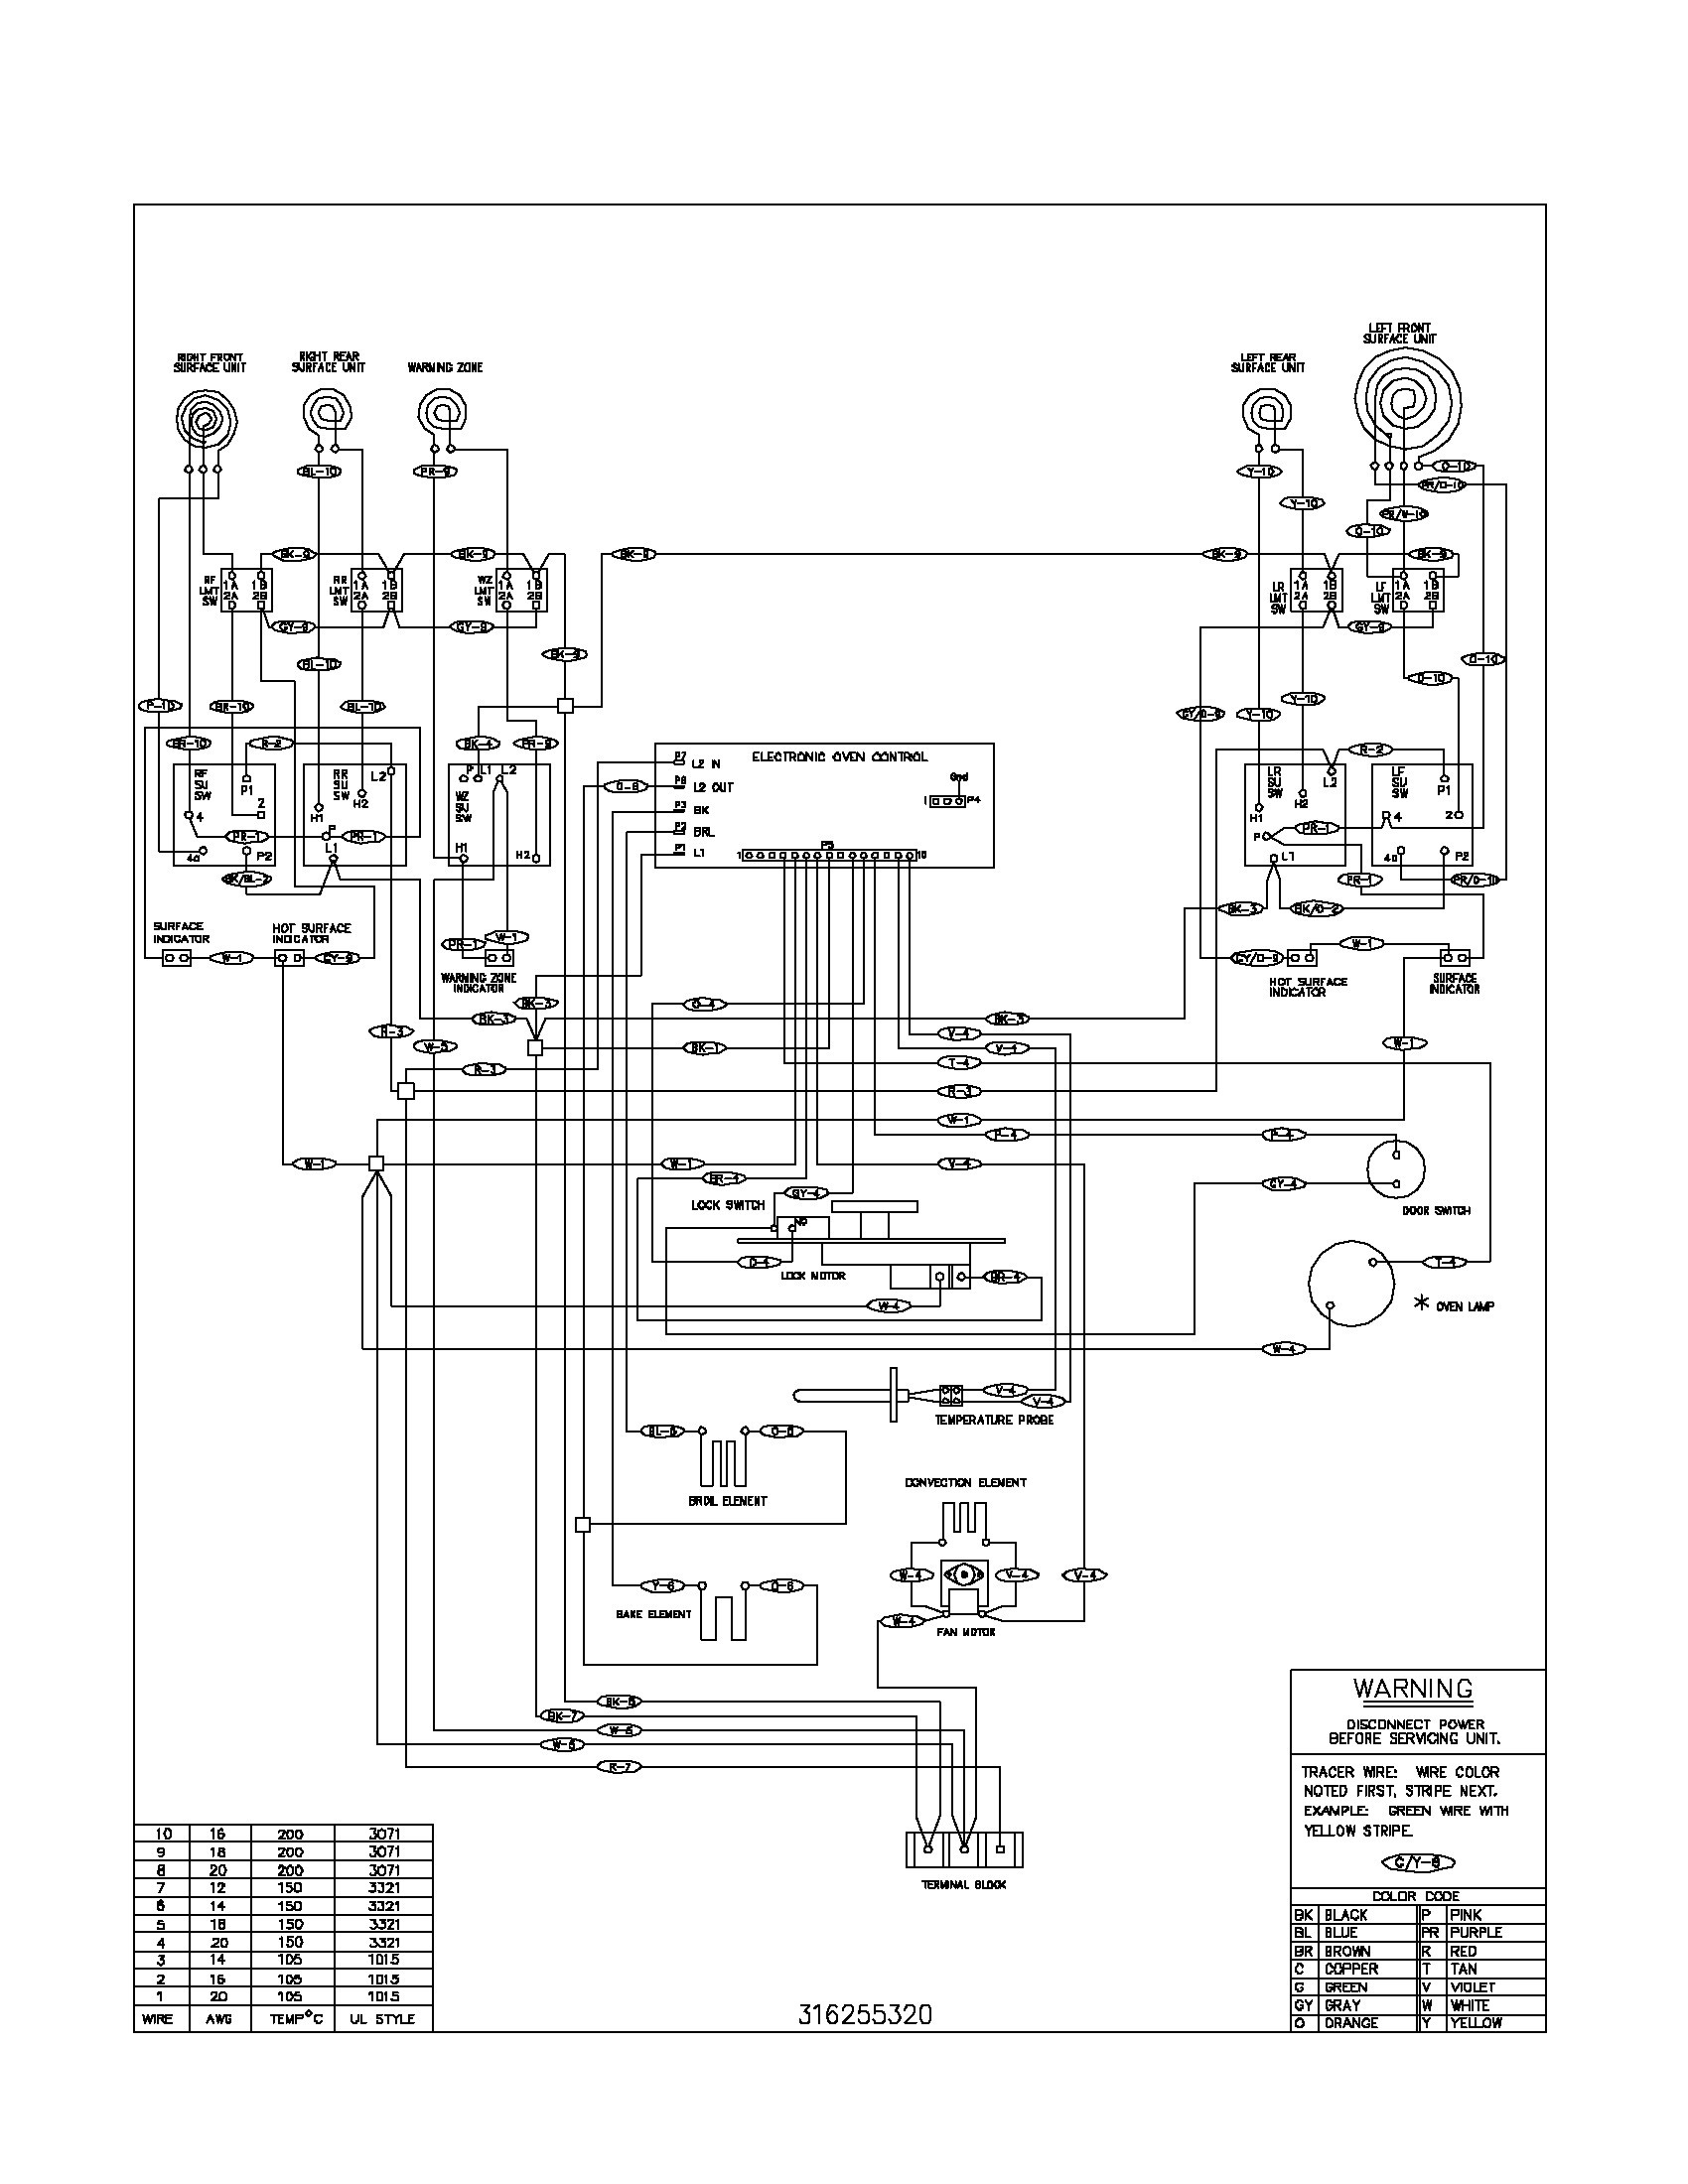 Diagram Oven Wiring Ge Jbp79sod1ss - Wiring Diagram & Cable ... on